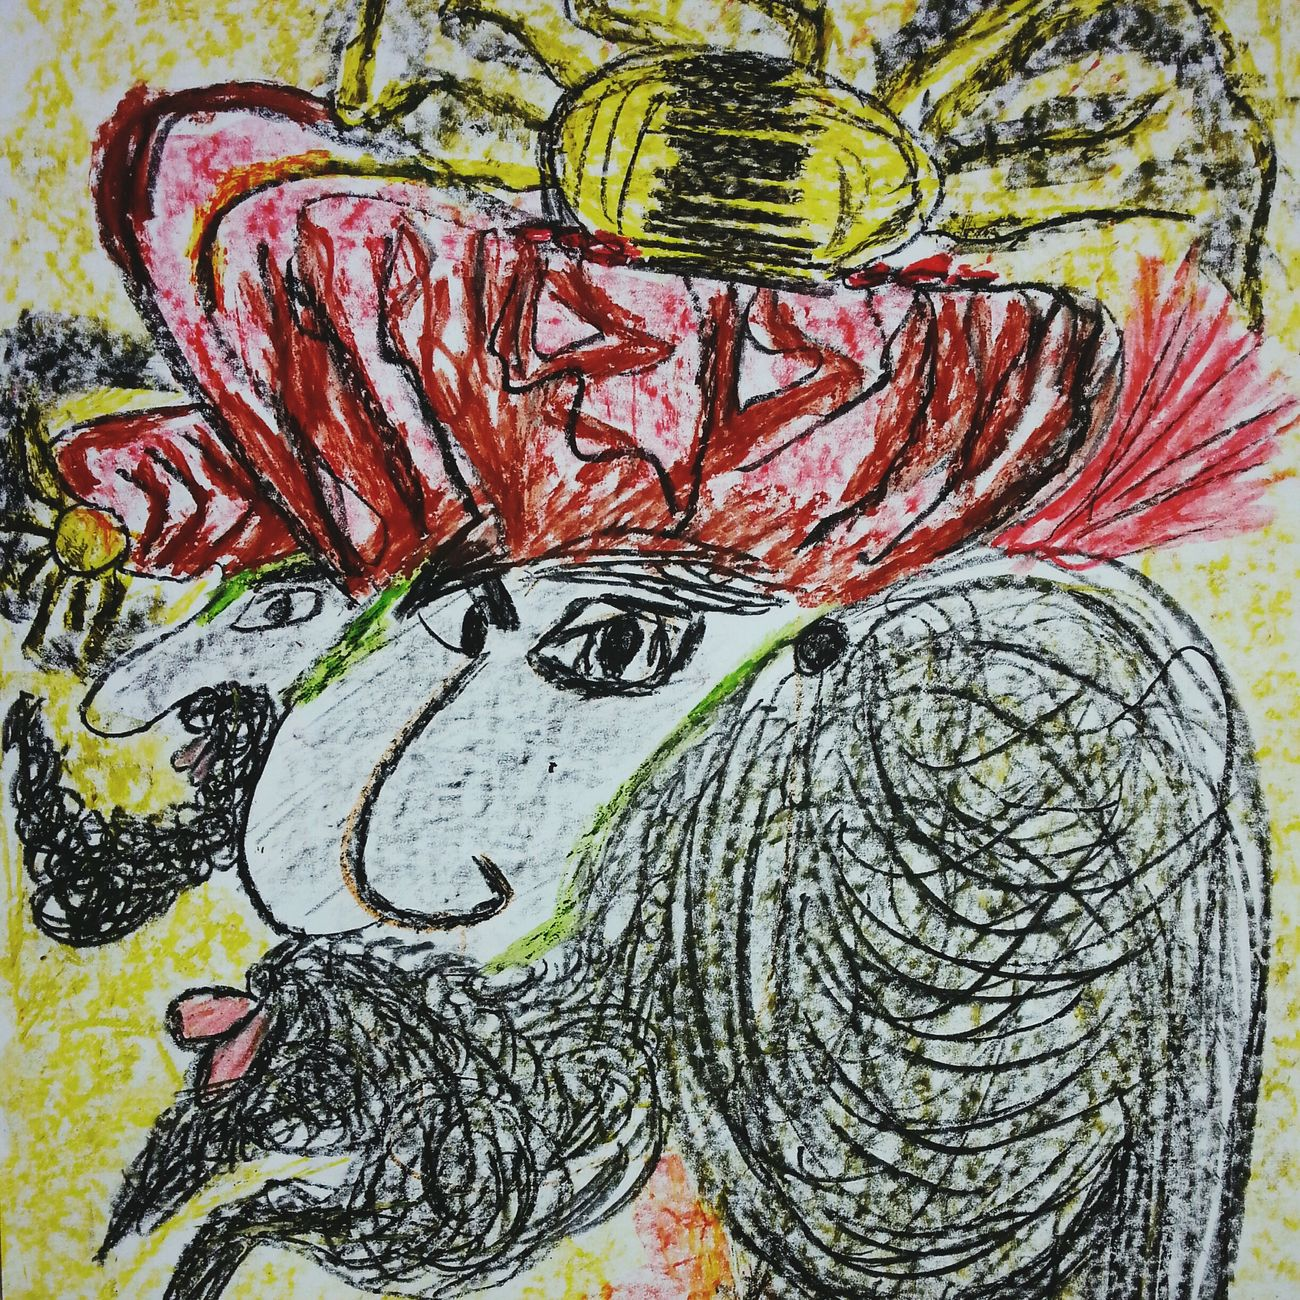 Abstractart Spirituality Drawn By Me My Art, My Soul... Intuitiveart See The Light Art World Drawing Art, Drawing, Creativity Warming The Soul SoulArt Artworks Drawingart ArtWork Intuitive Art My Artistic Style Art Gallery Spiritualguidence